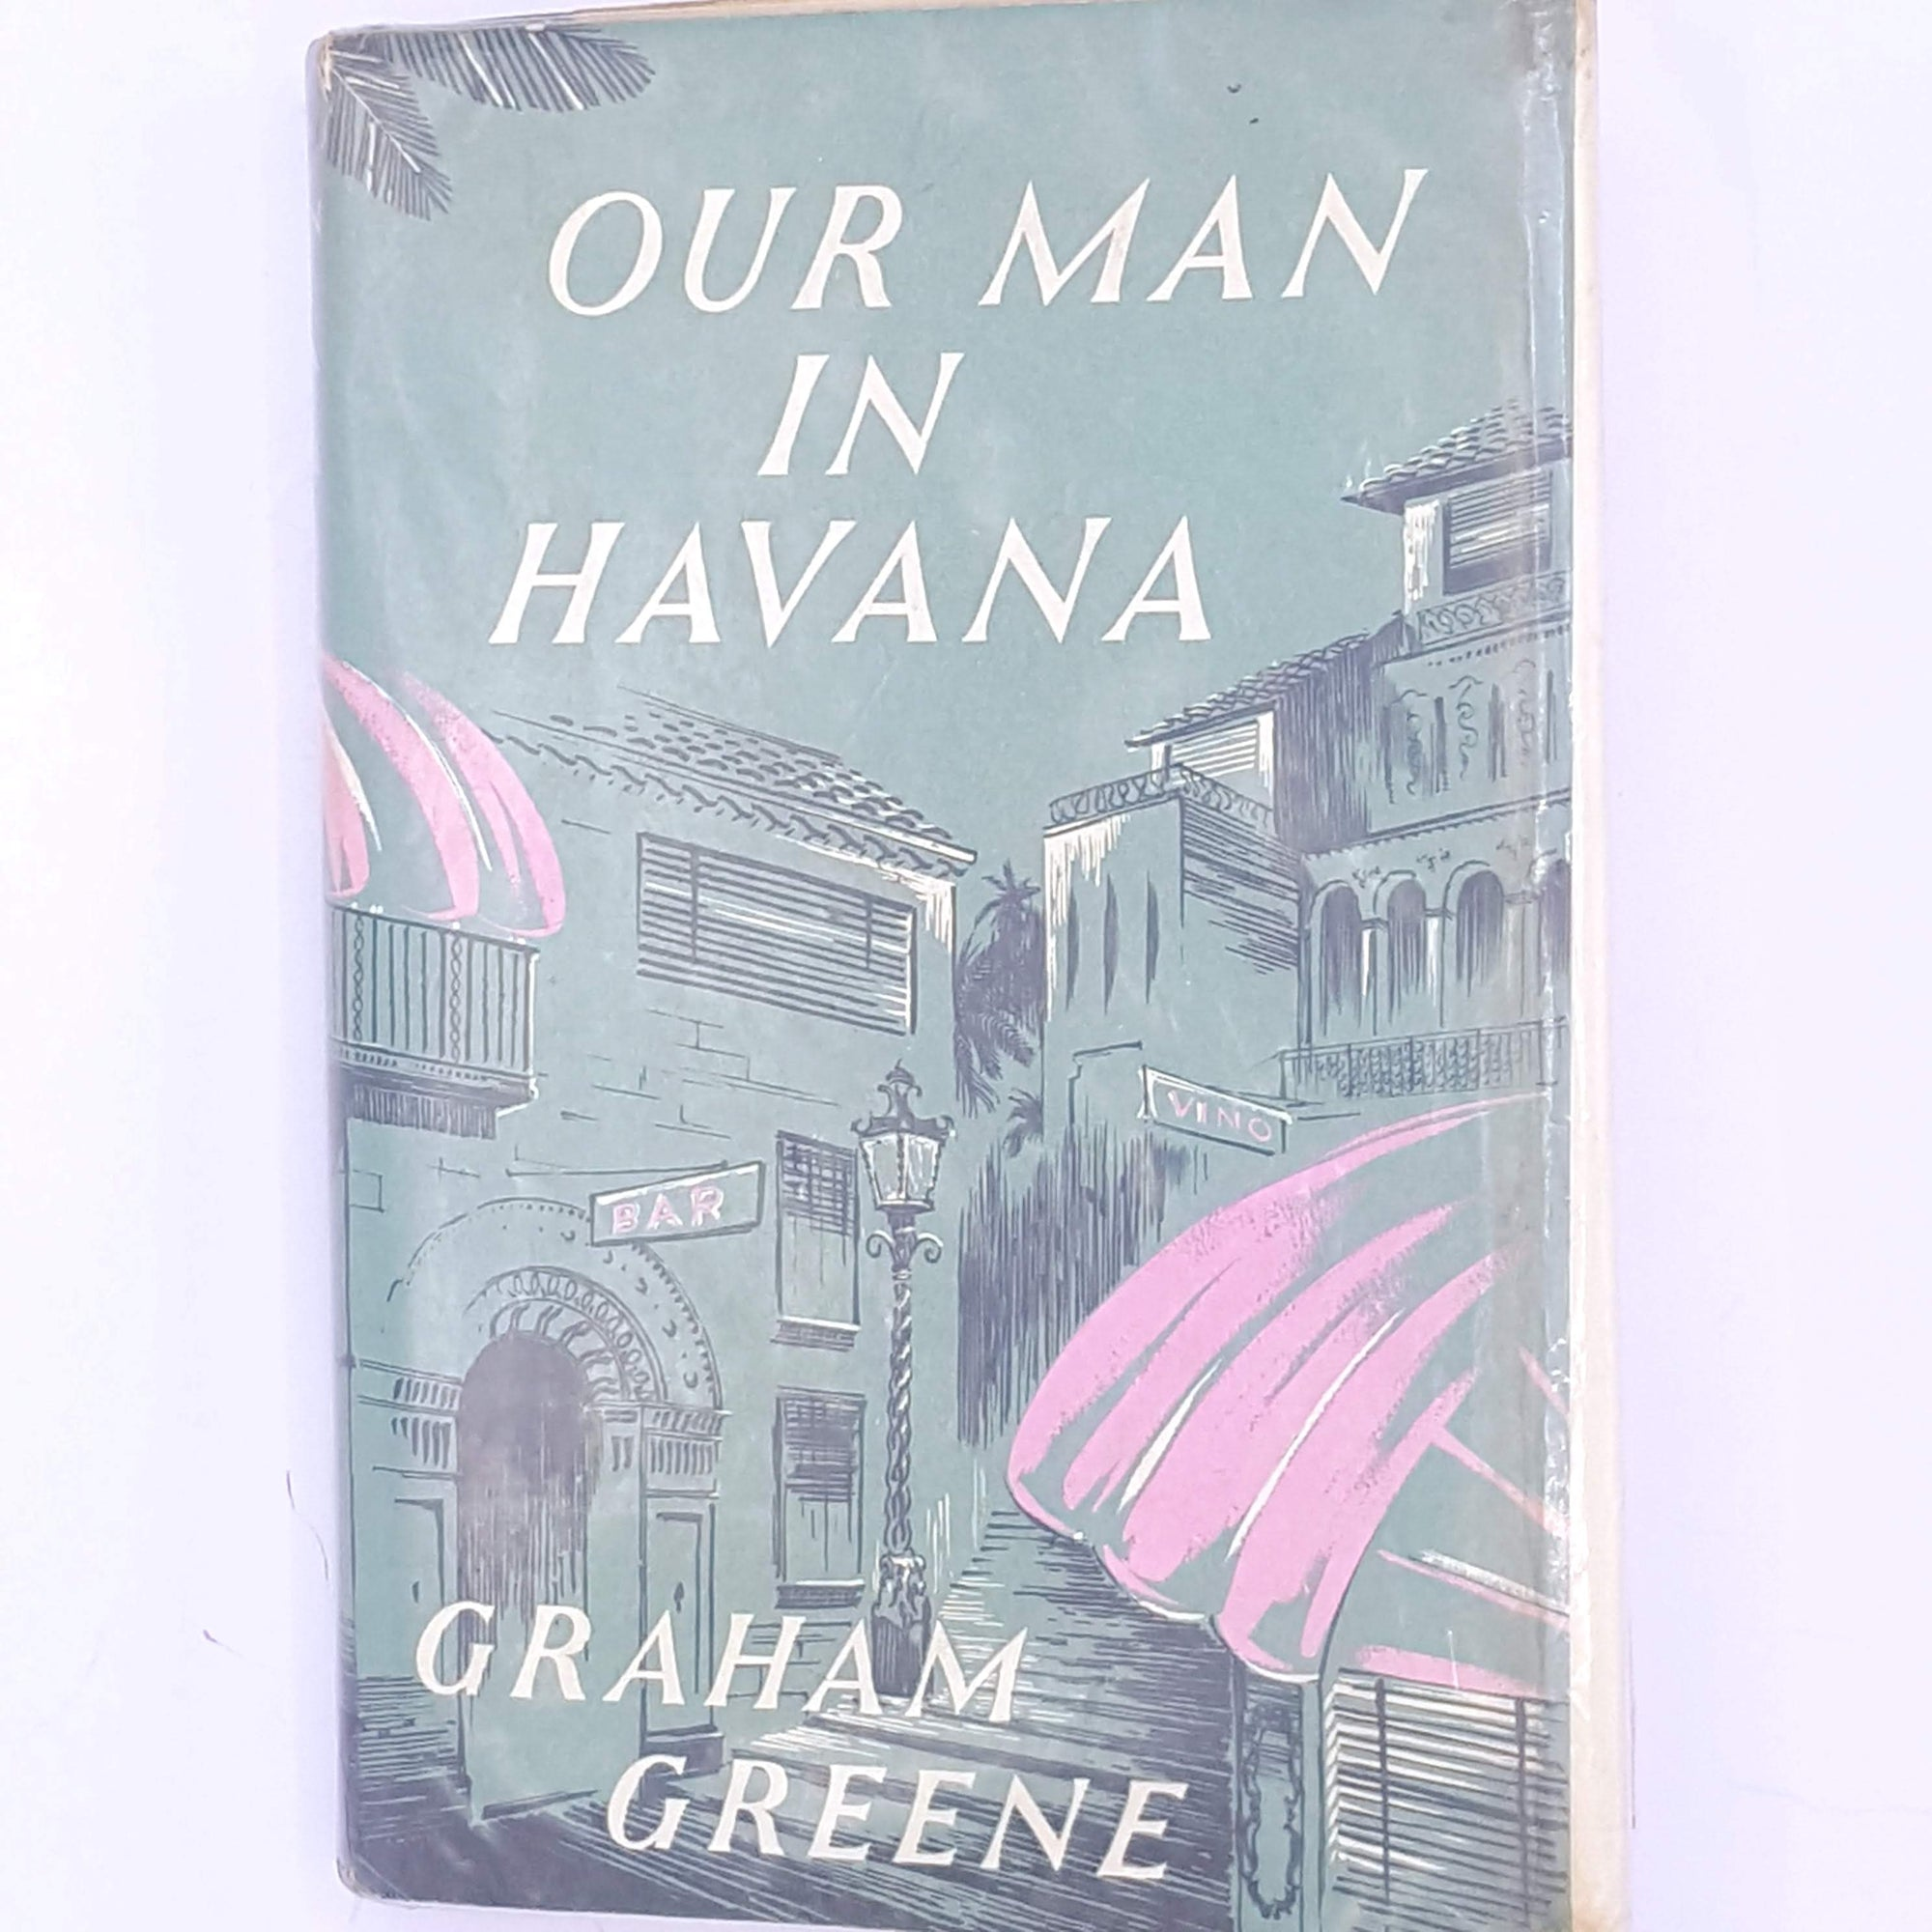 mystery-decorative-secret-agent-sport-patterned-for-him-books-Graham-Greene-old-antique-secret-service-our-man-in-havana-christmas-gifts-classic-vintage-crime-thrift-country-house-library-